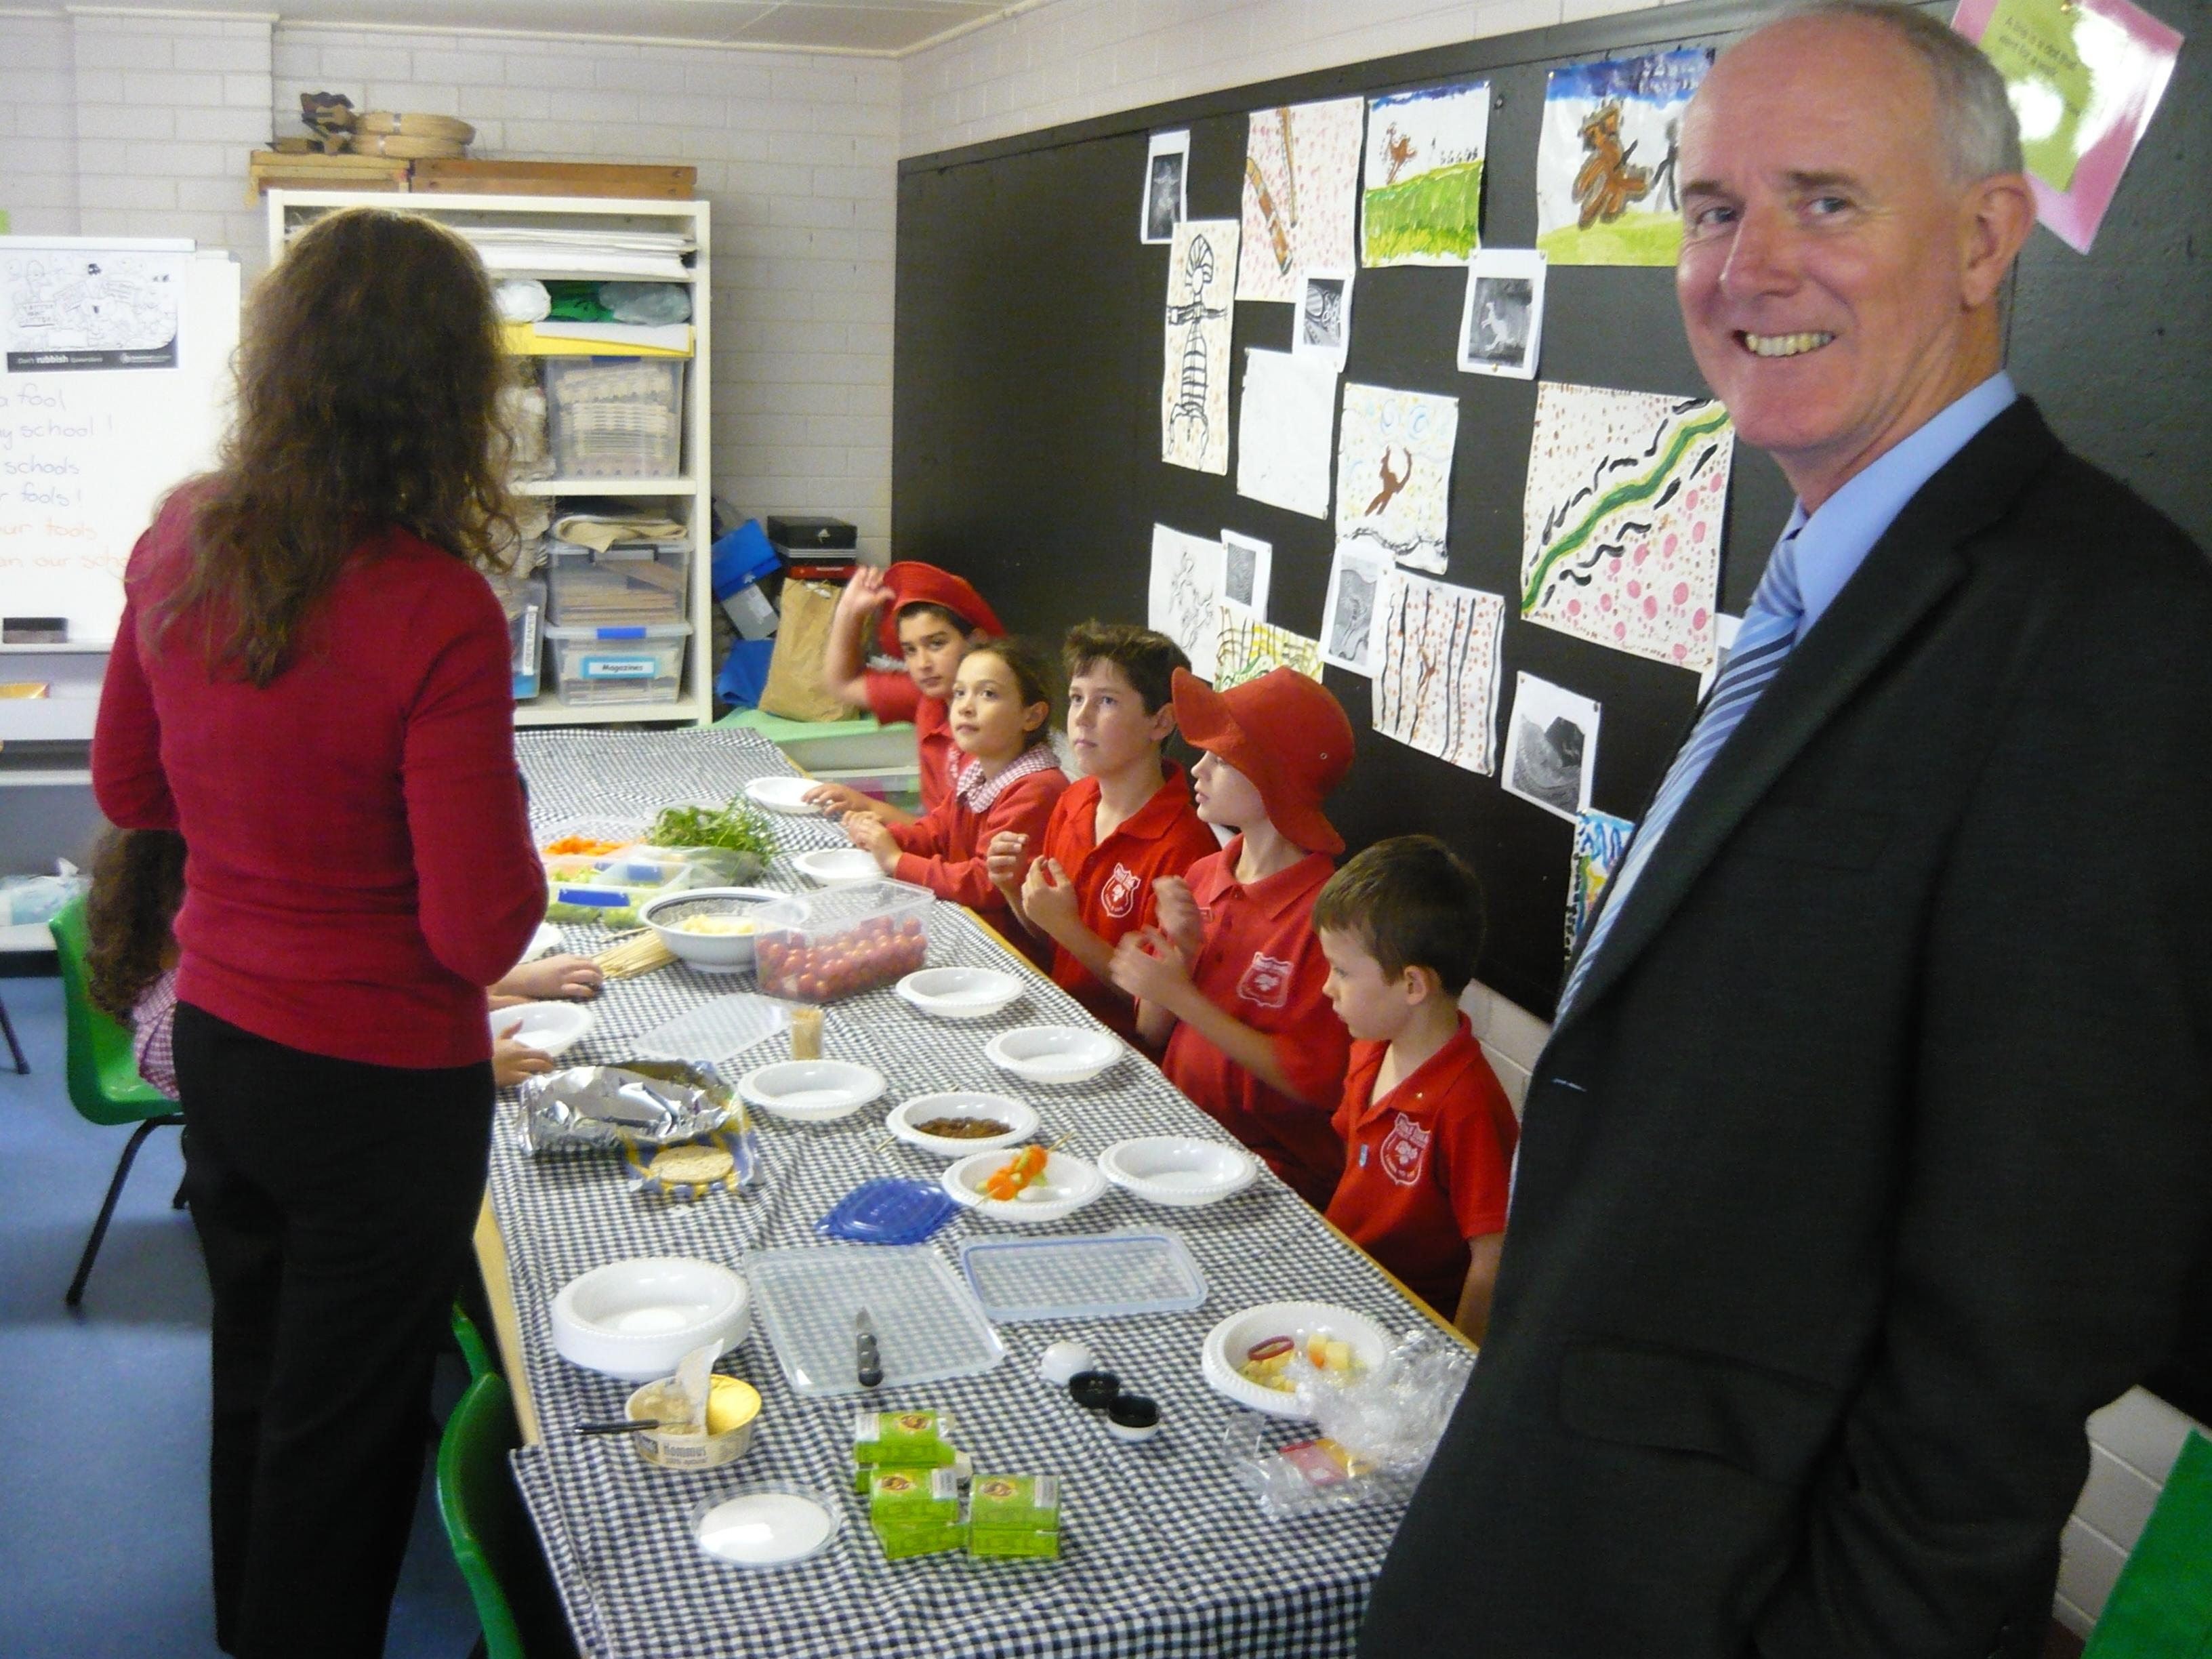 Children use the produce from the garden in a Kitchen Lesson.